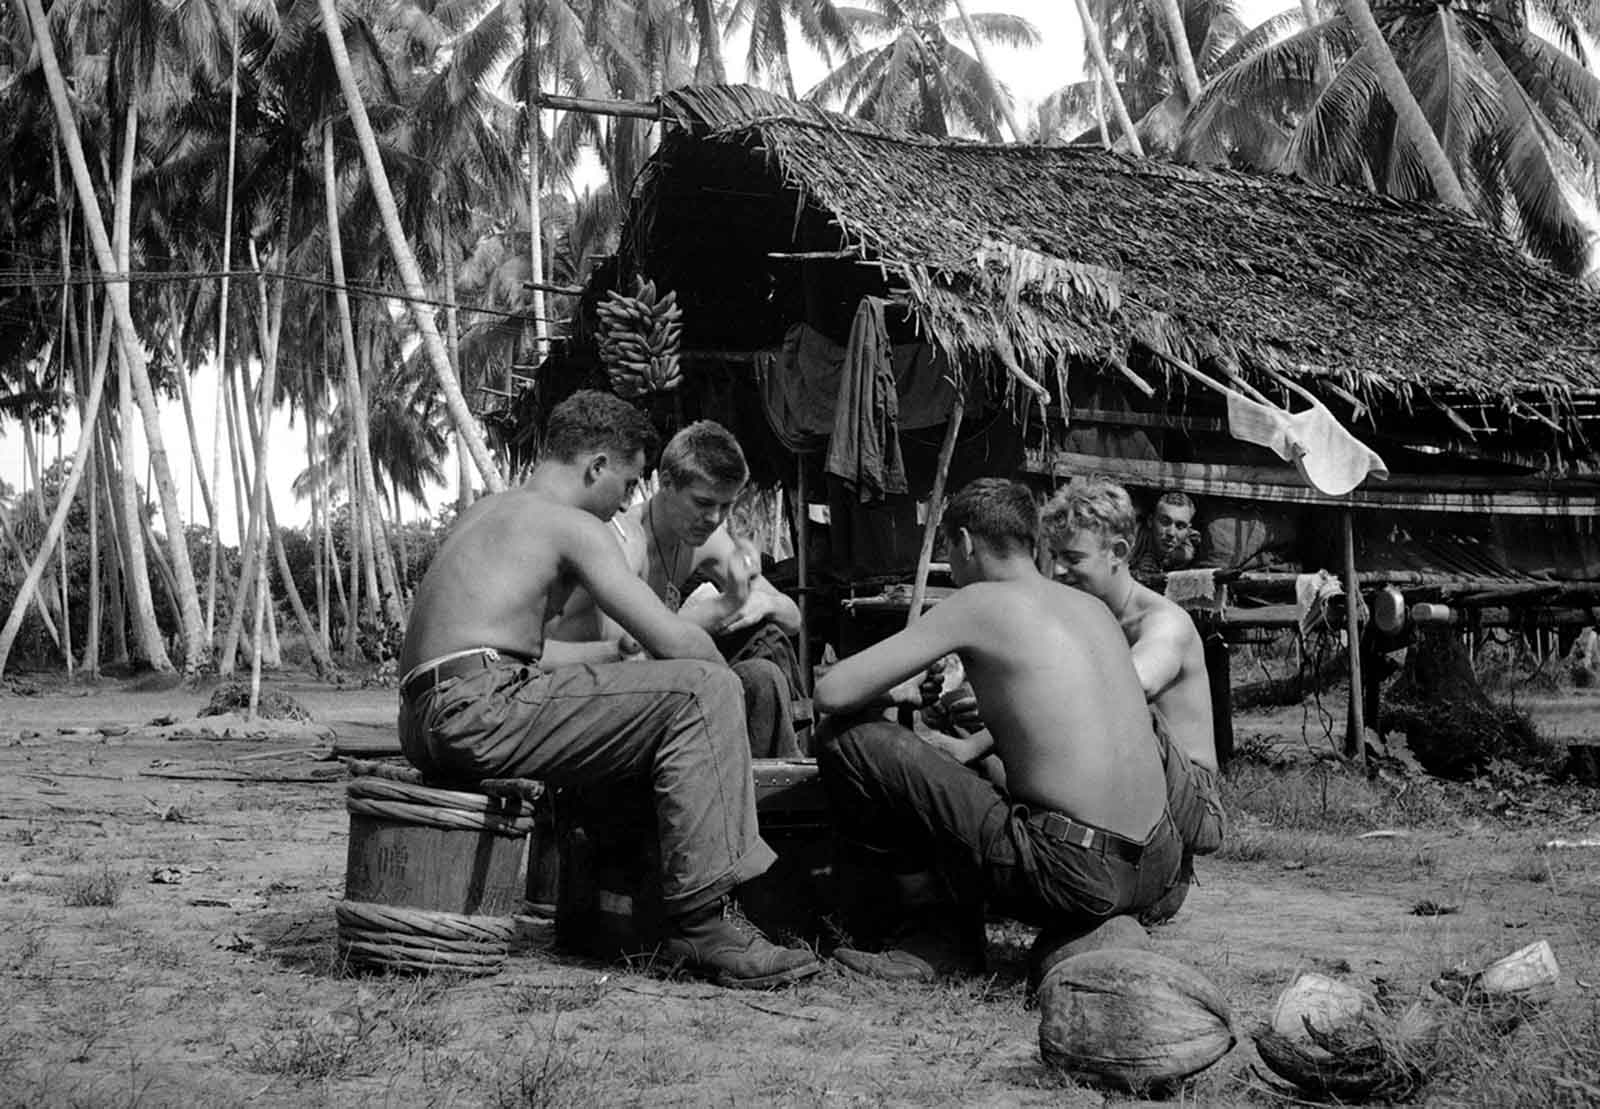 U.S. soldiers from every state shipped off to war. Here, after taking part in the fighting, soldiers (two from Detroit) relax by playing cards in a palm grove behind the lines at Buna, New Guinea on January 13, 1943. The players are, left to right: Pfc. Sam Demopolis, Detroit, Michigan,; Pfc. Robert Trudell (facing camera) of Detroit; Corp. James Williams (back to the camera); Genesee Depot, Wisconsin; and Pvt. Laurence Thompson, Duluth, Minnesota.